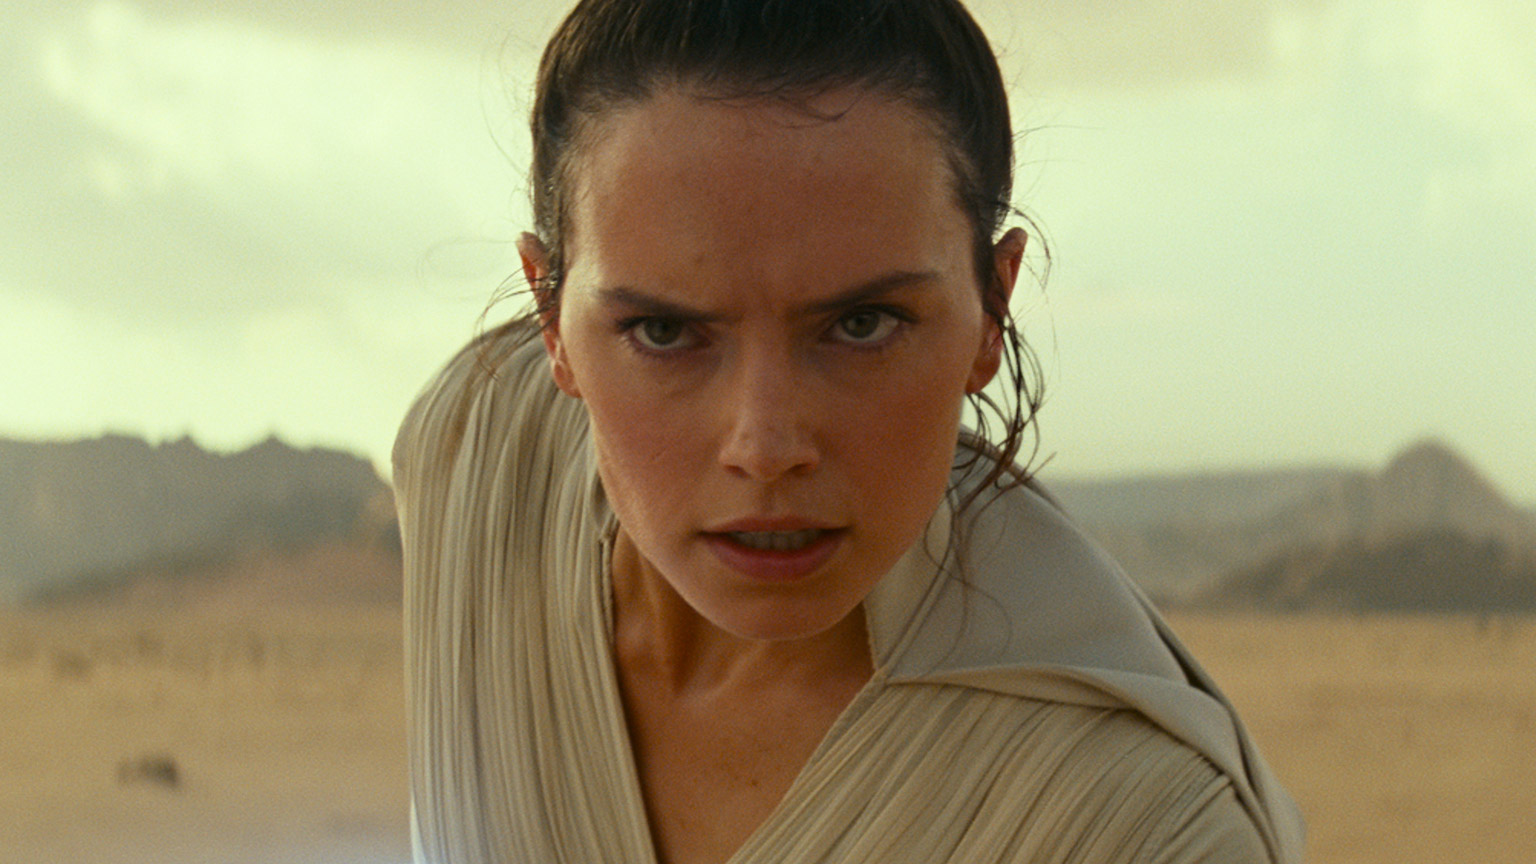 Three more Star Wars movie are planned. Credit: Disney/Lucasfilm